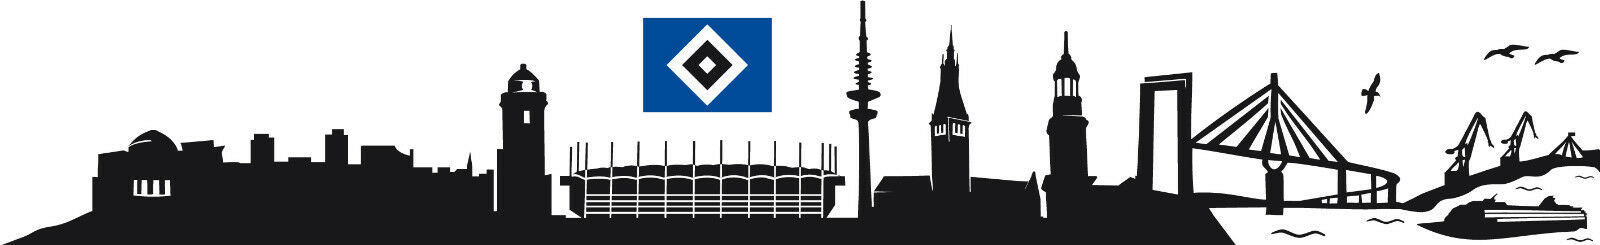 WANDTATTOOS WANDTATTOOS WANDTATTOOS HAMBURGER SV Bundesliga Sport Fussball HSV Fan Raute Dino Skyline be0db0